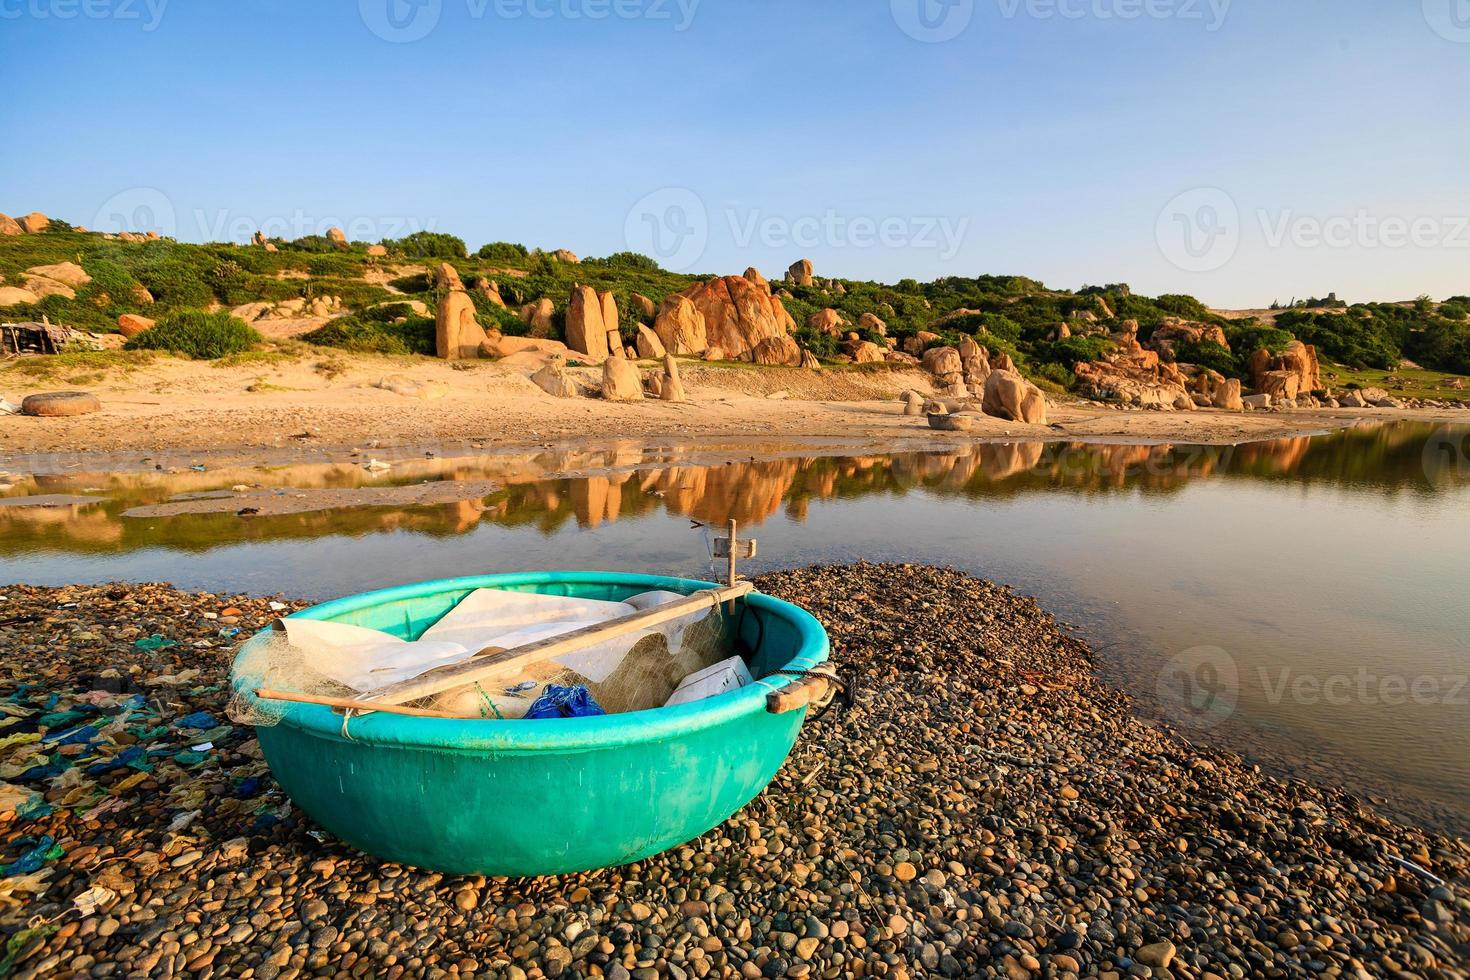 Basket boat at Co Thach beach in early morning, Vietnam photo